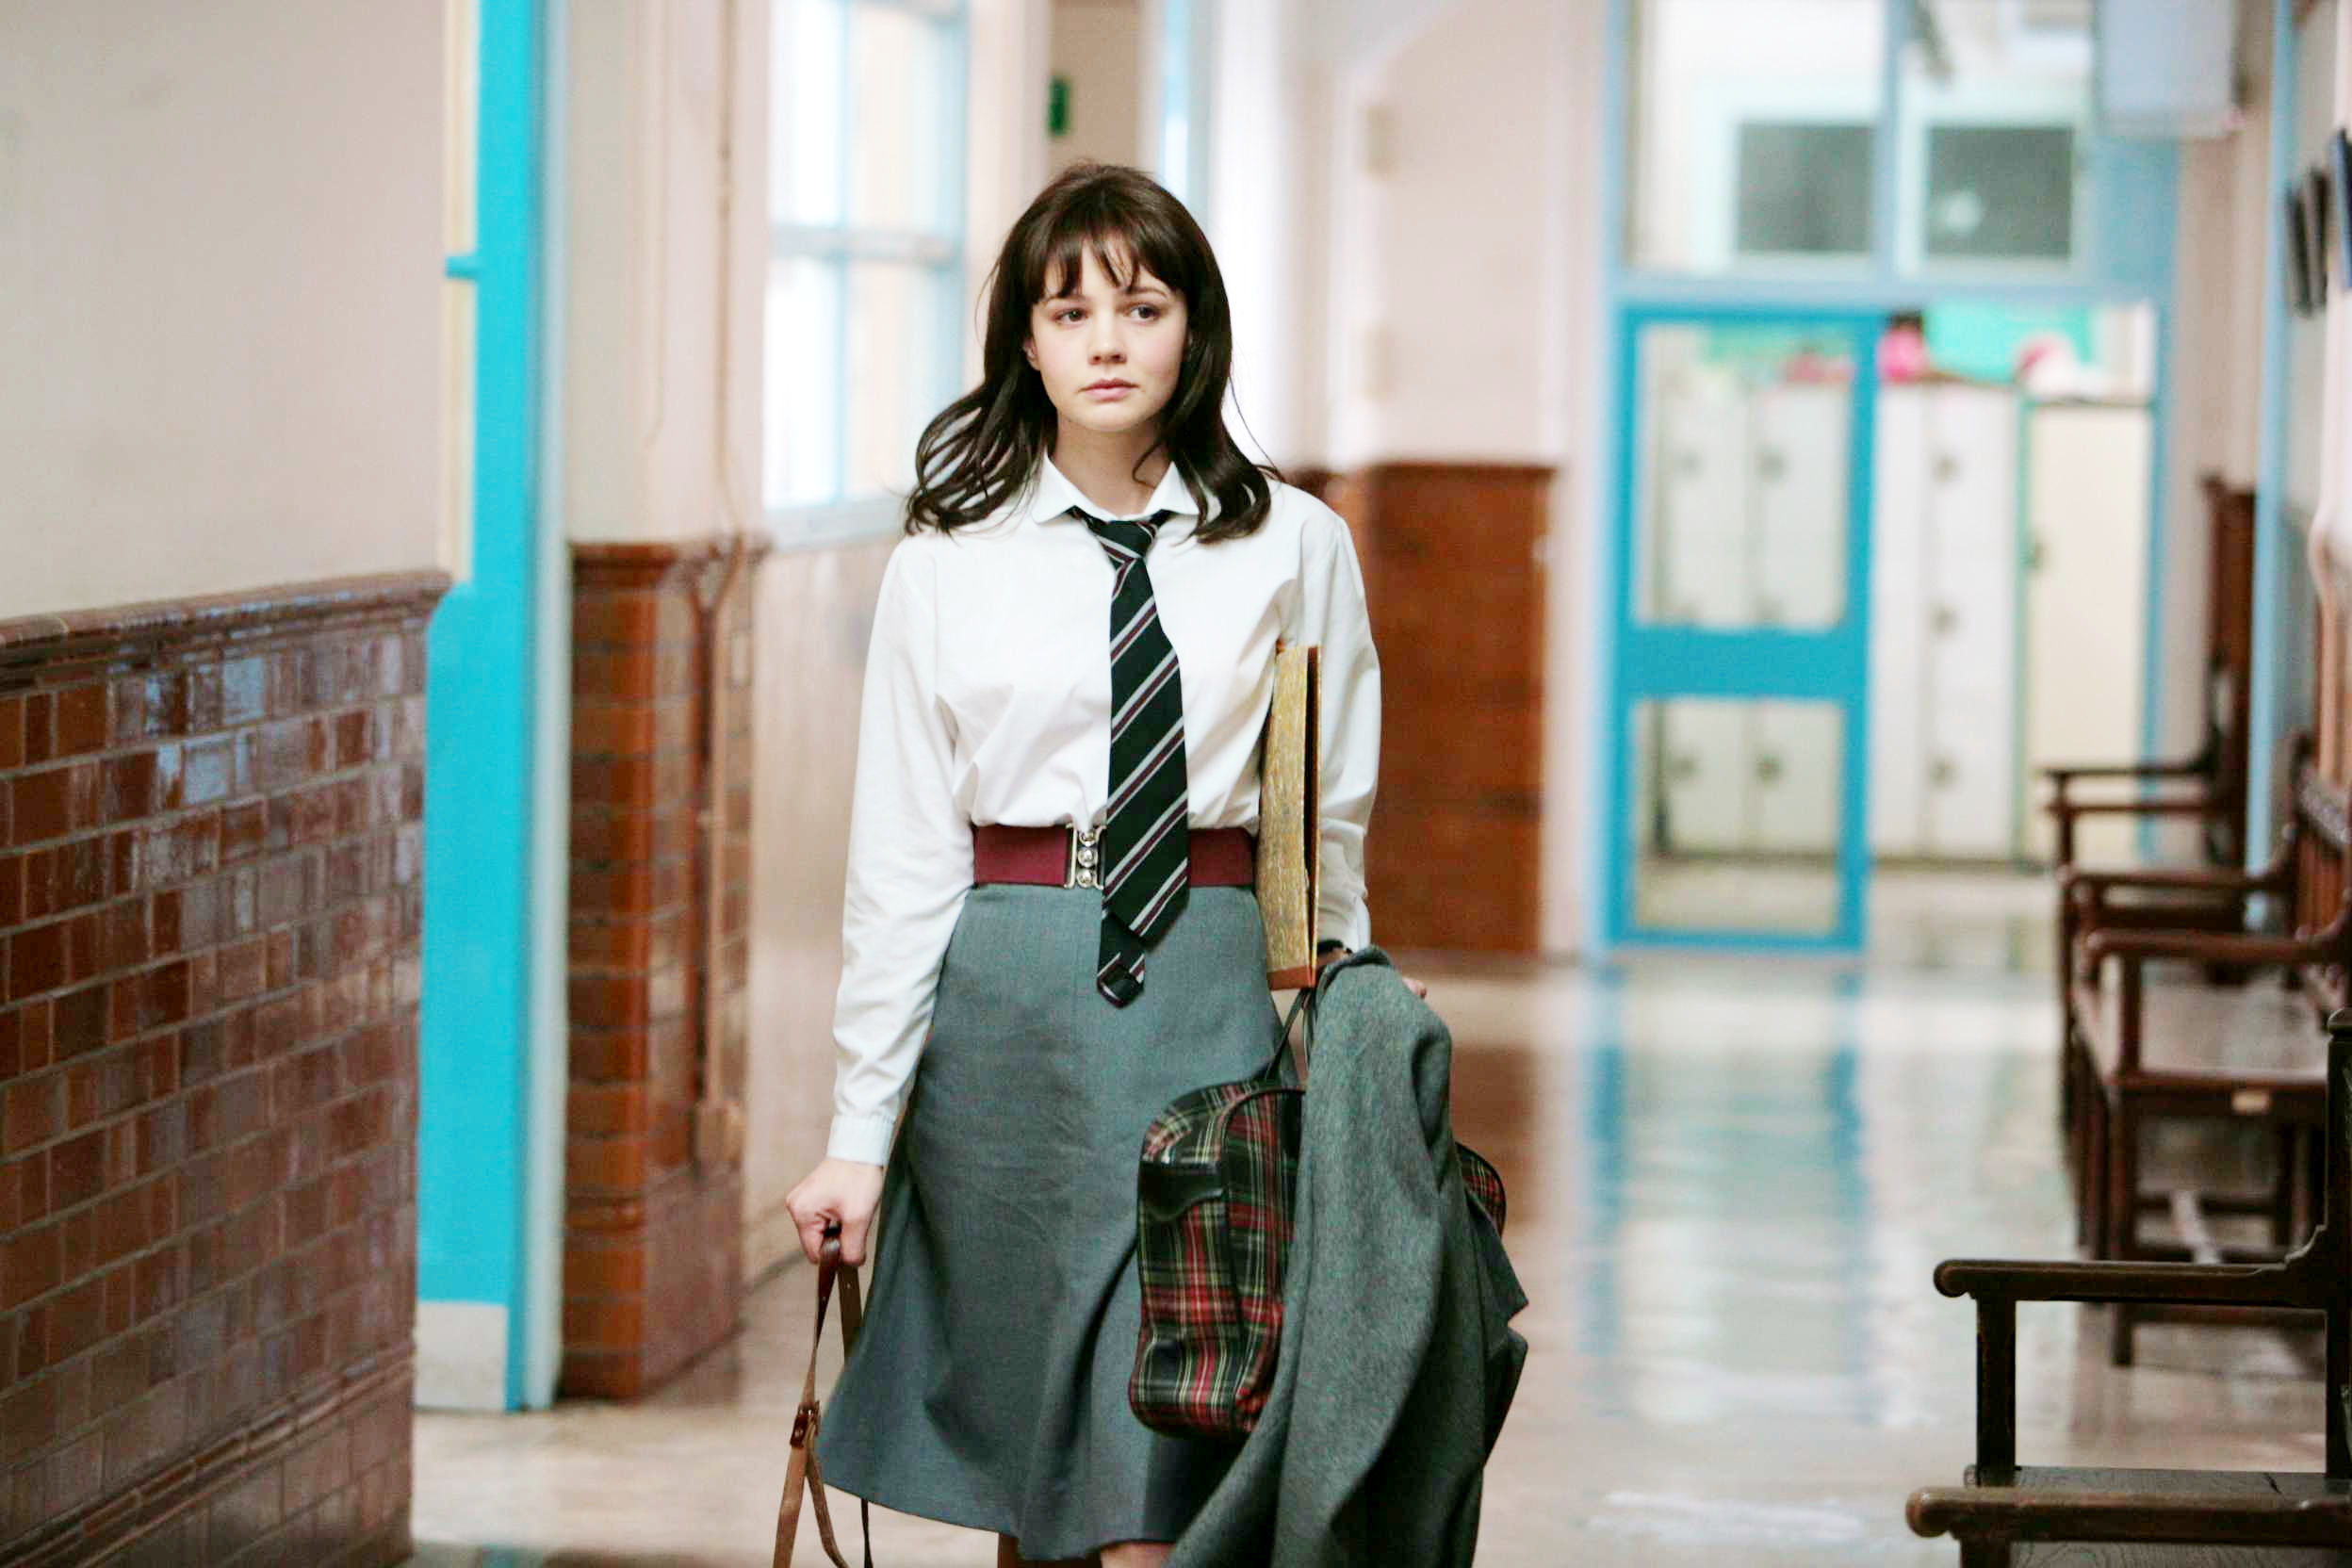 I wish American school uniforms were this chic